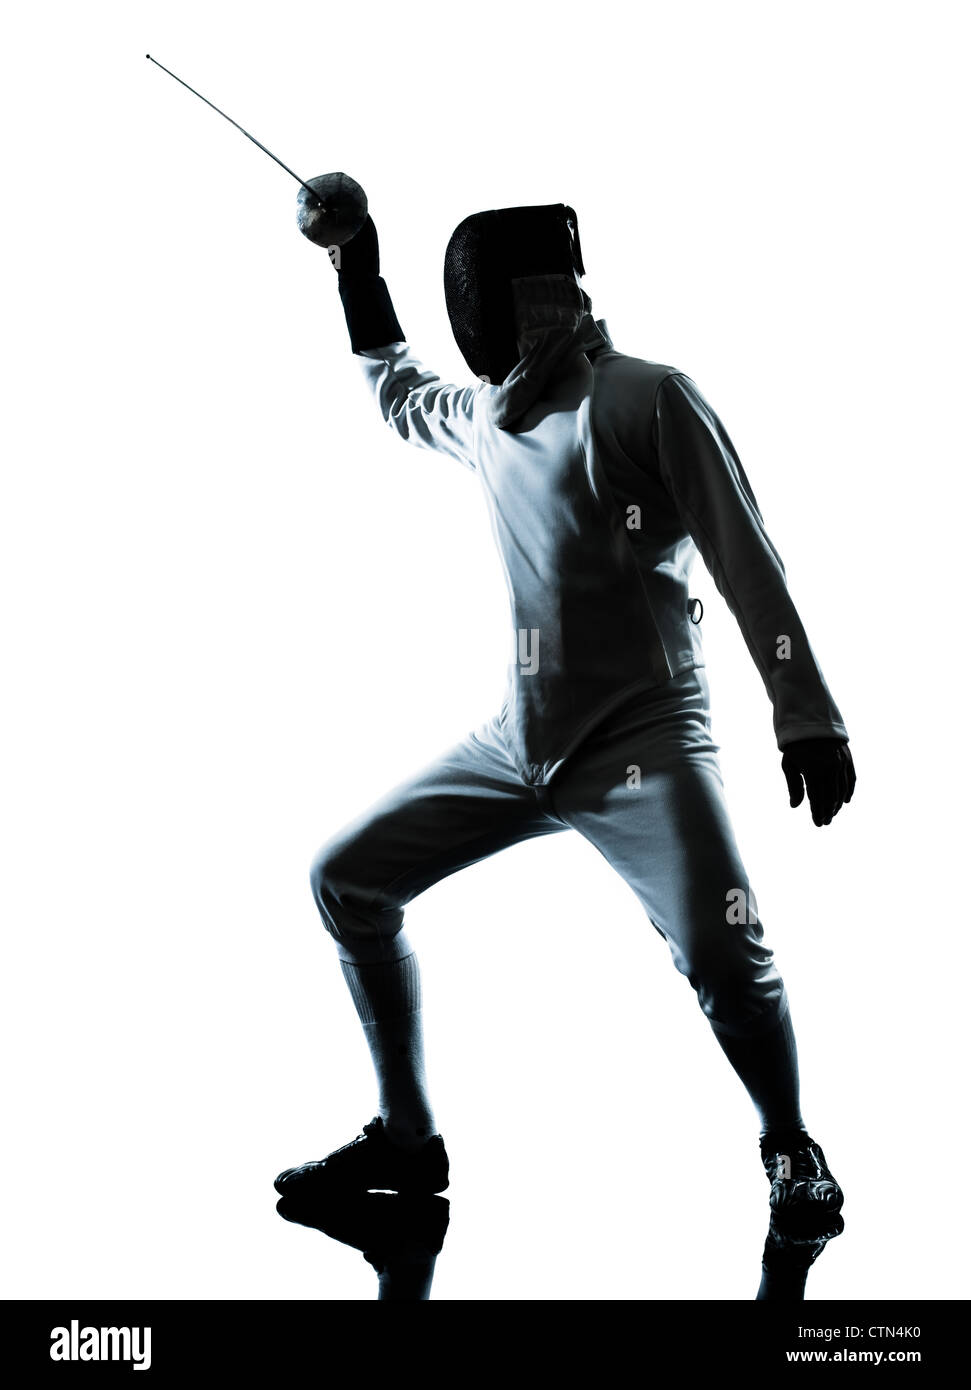 one man fencing silhouette in studio isolated on white background Stock Photo